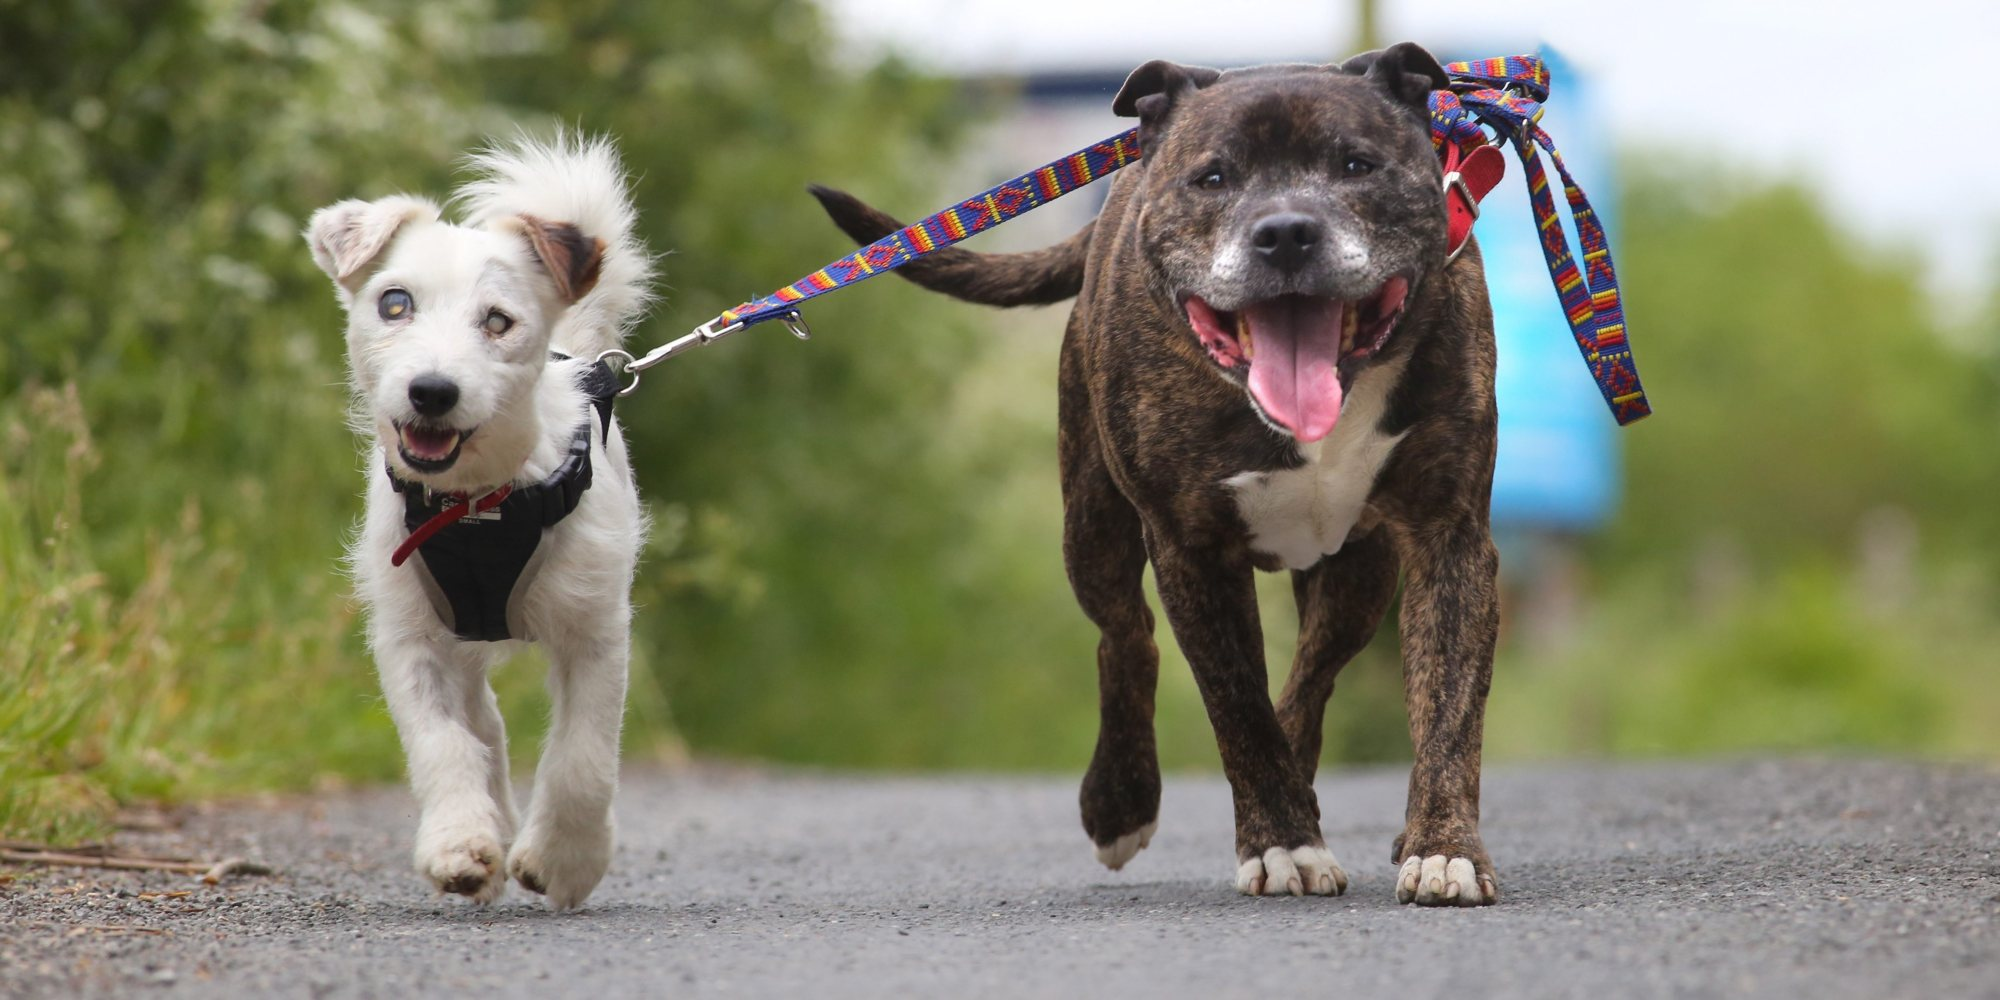 Blind Rescue Pooch And Guide Dog Bff Are Inseparable